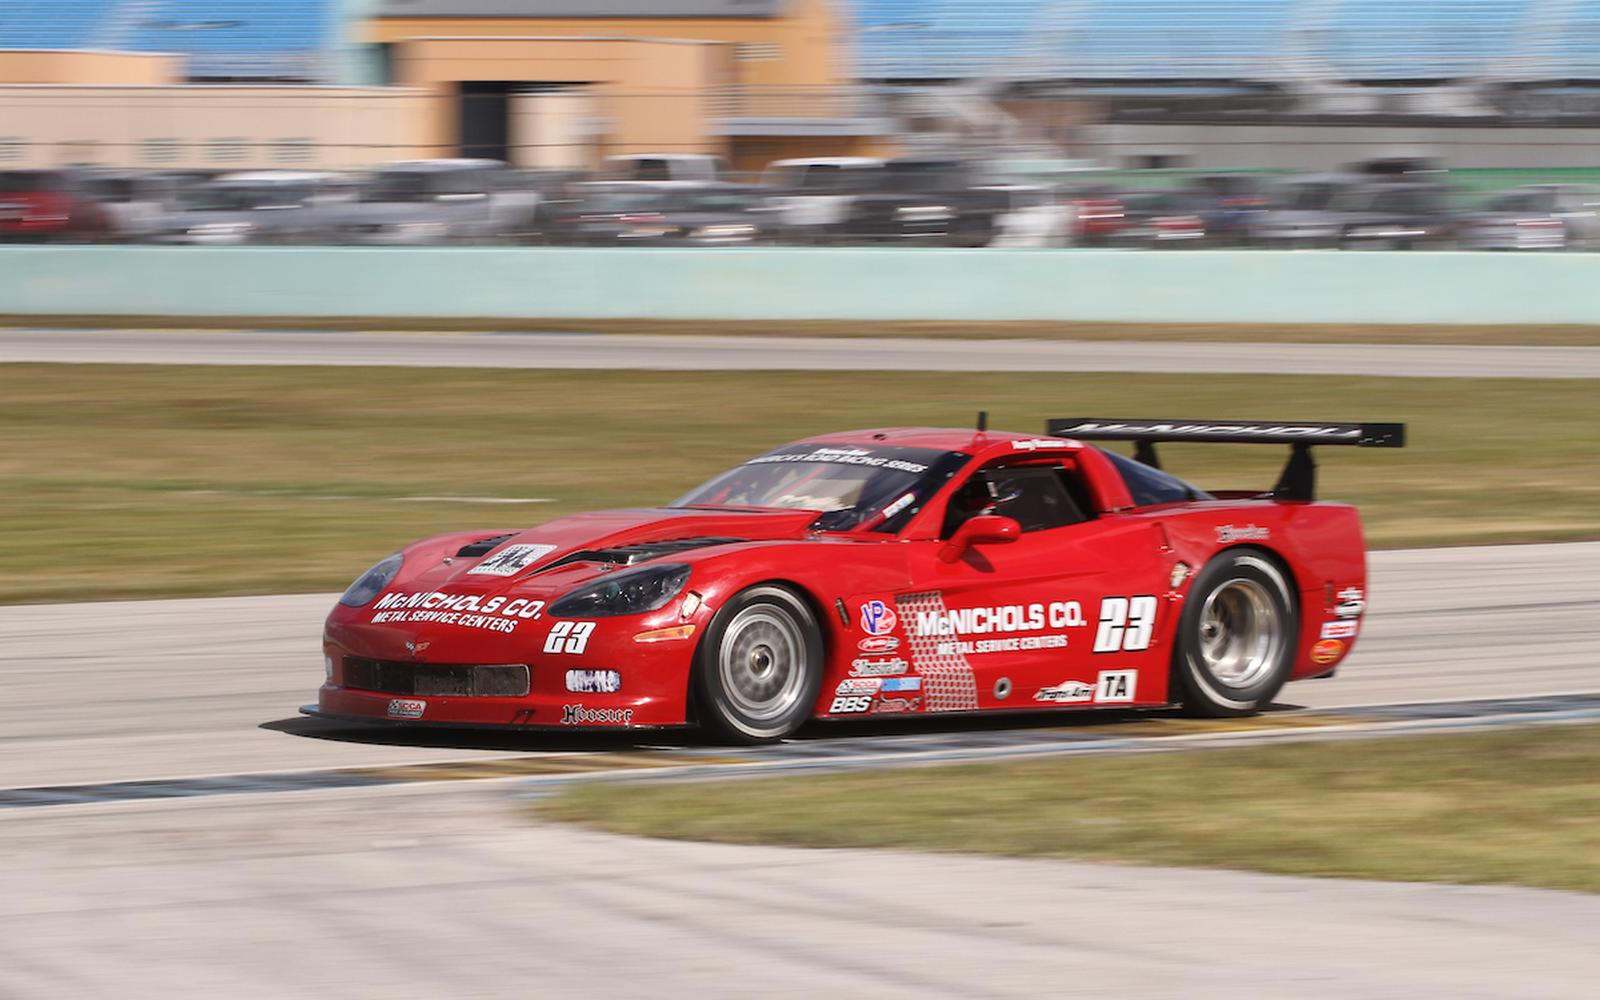 Ruman Targeting Repeat Win at Homestead Miami